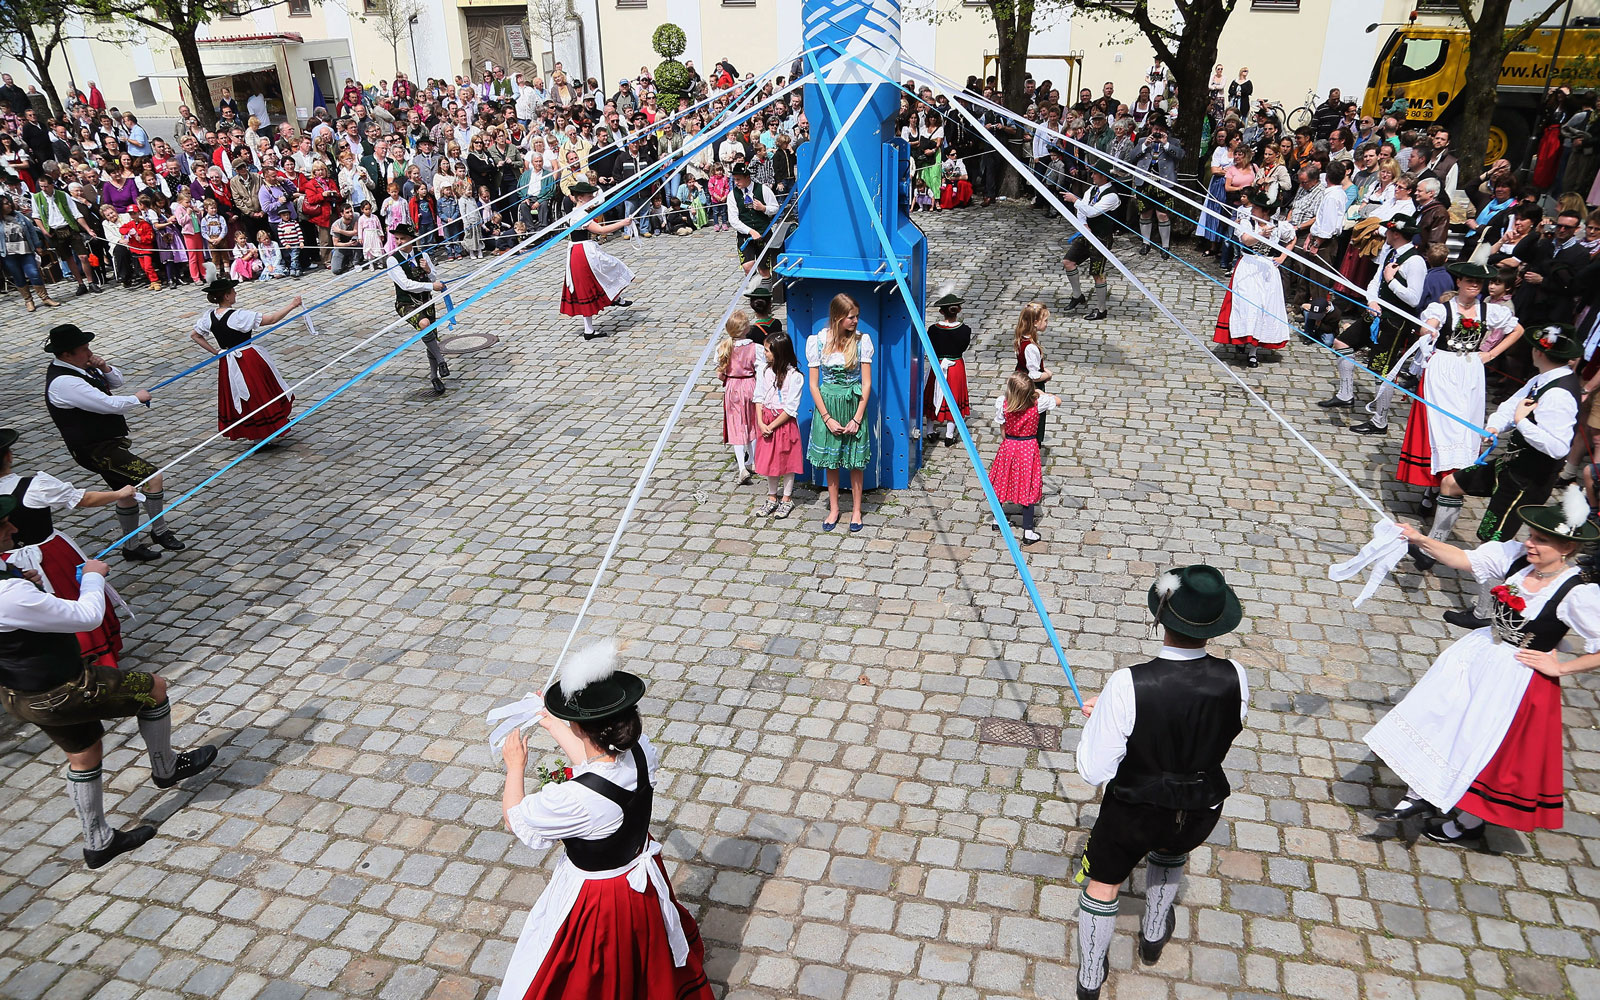 May Day is about more than dancing around a pole — here's how it's celebrated around the world